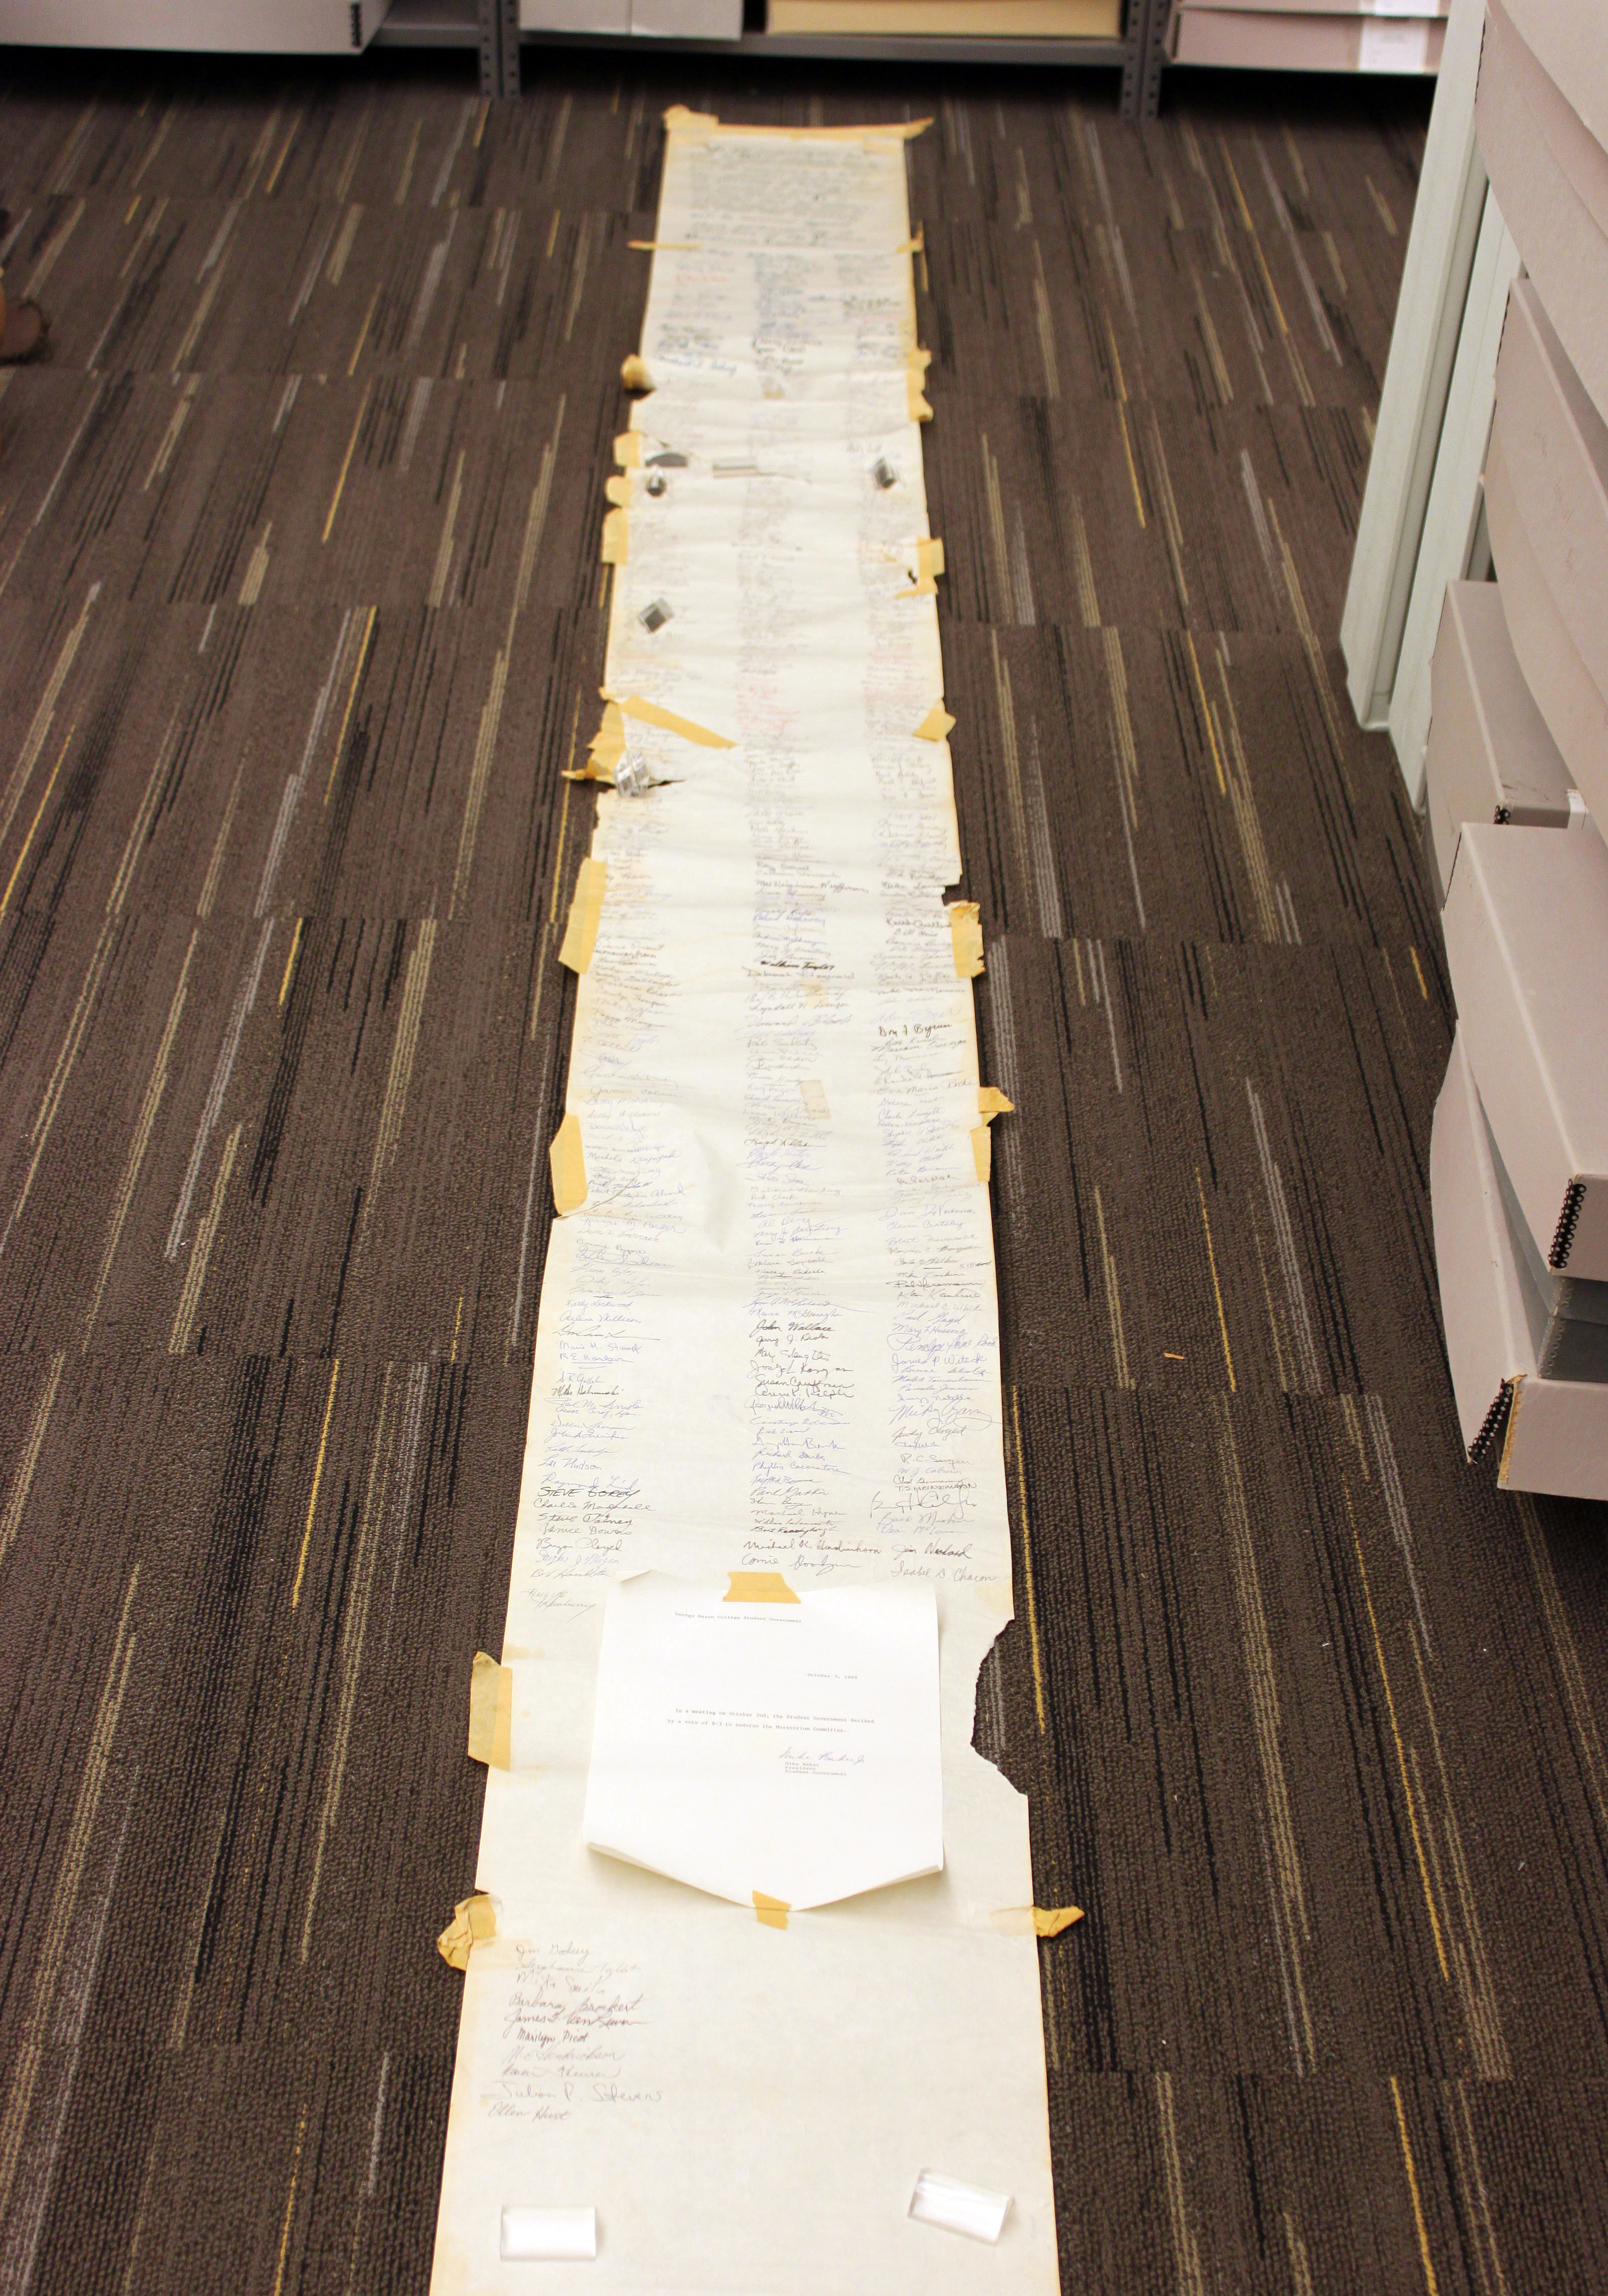 The Vietnam Moratorium Scroll opened up in the SCRC collections storage area. The document is over 12 feet long. From the George Mason University Office of the President records, 1949-2004 #R0019.